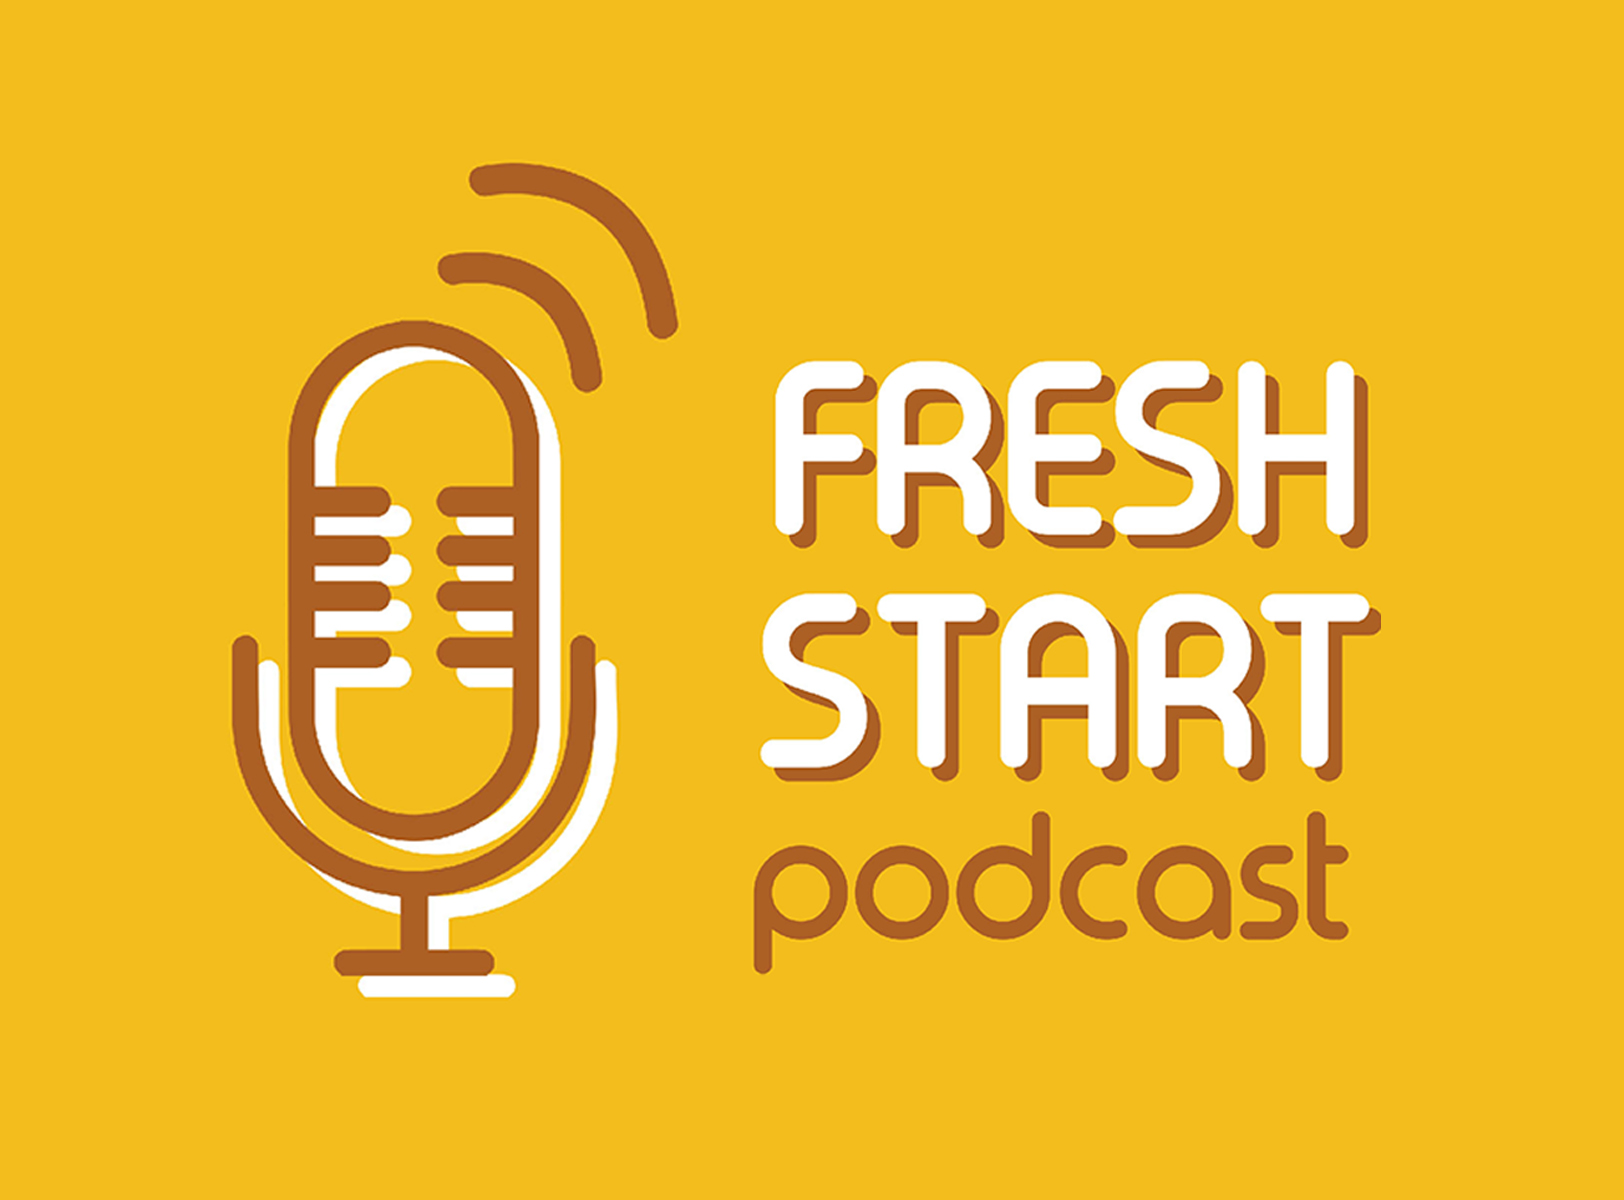 Fresh Start: Podcast News (1/1/2020 Wed.)